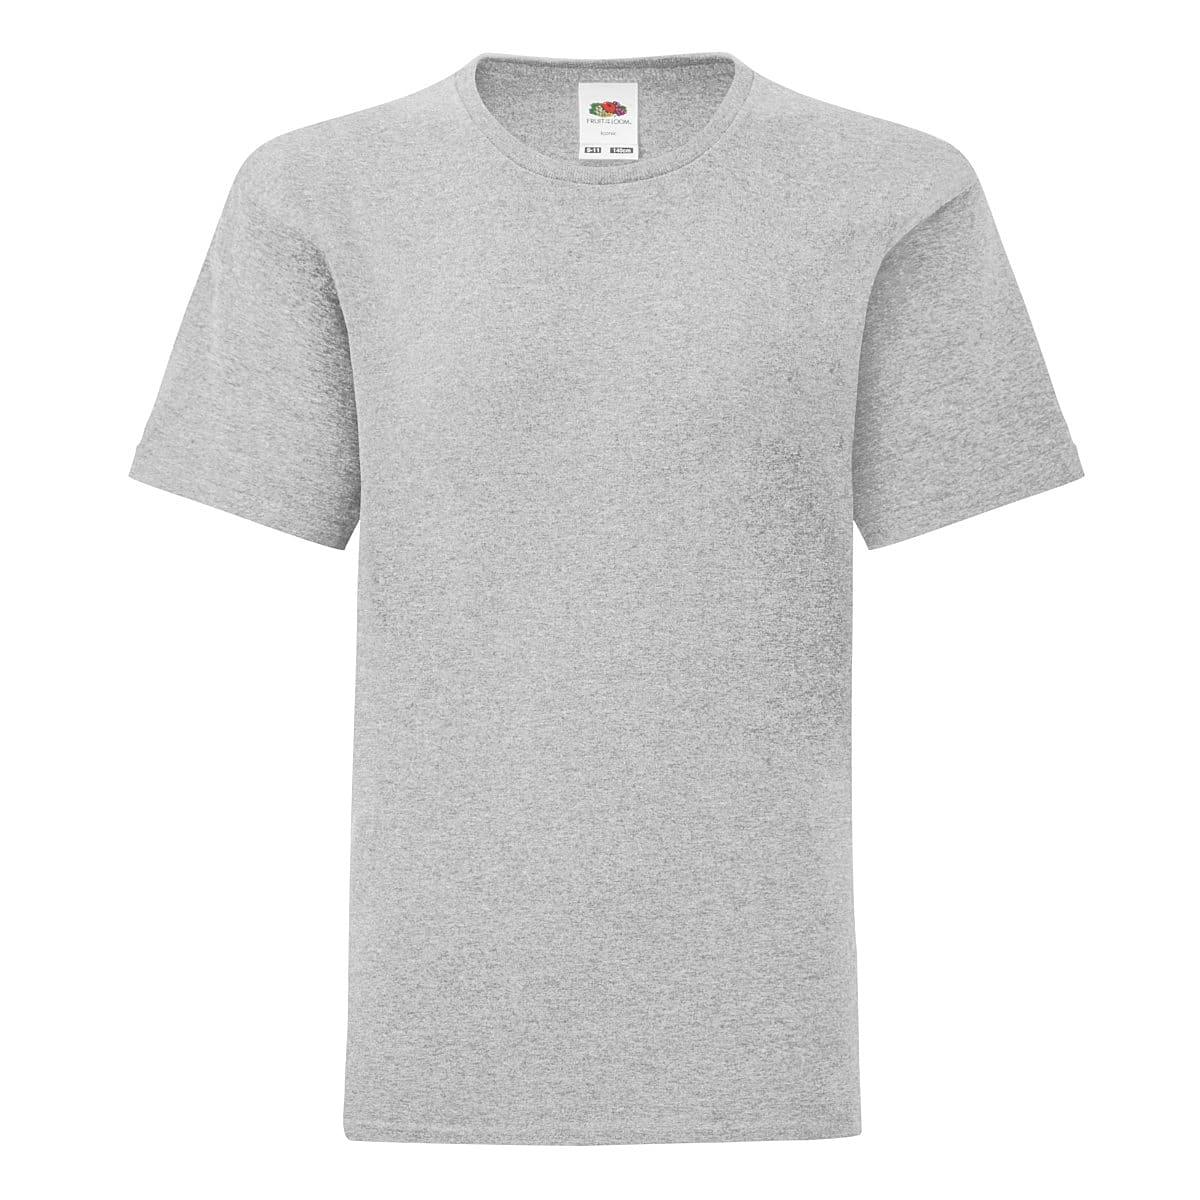 Fruit Of The Loom Kids Iconic T-Shirt in Heather Grey (Product Code: 61023)